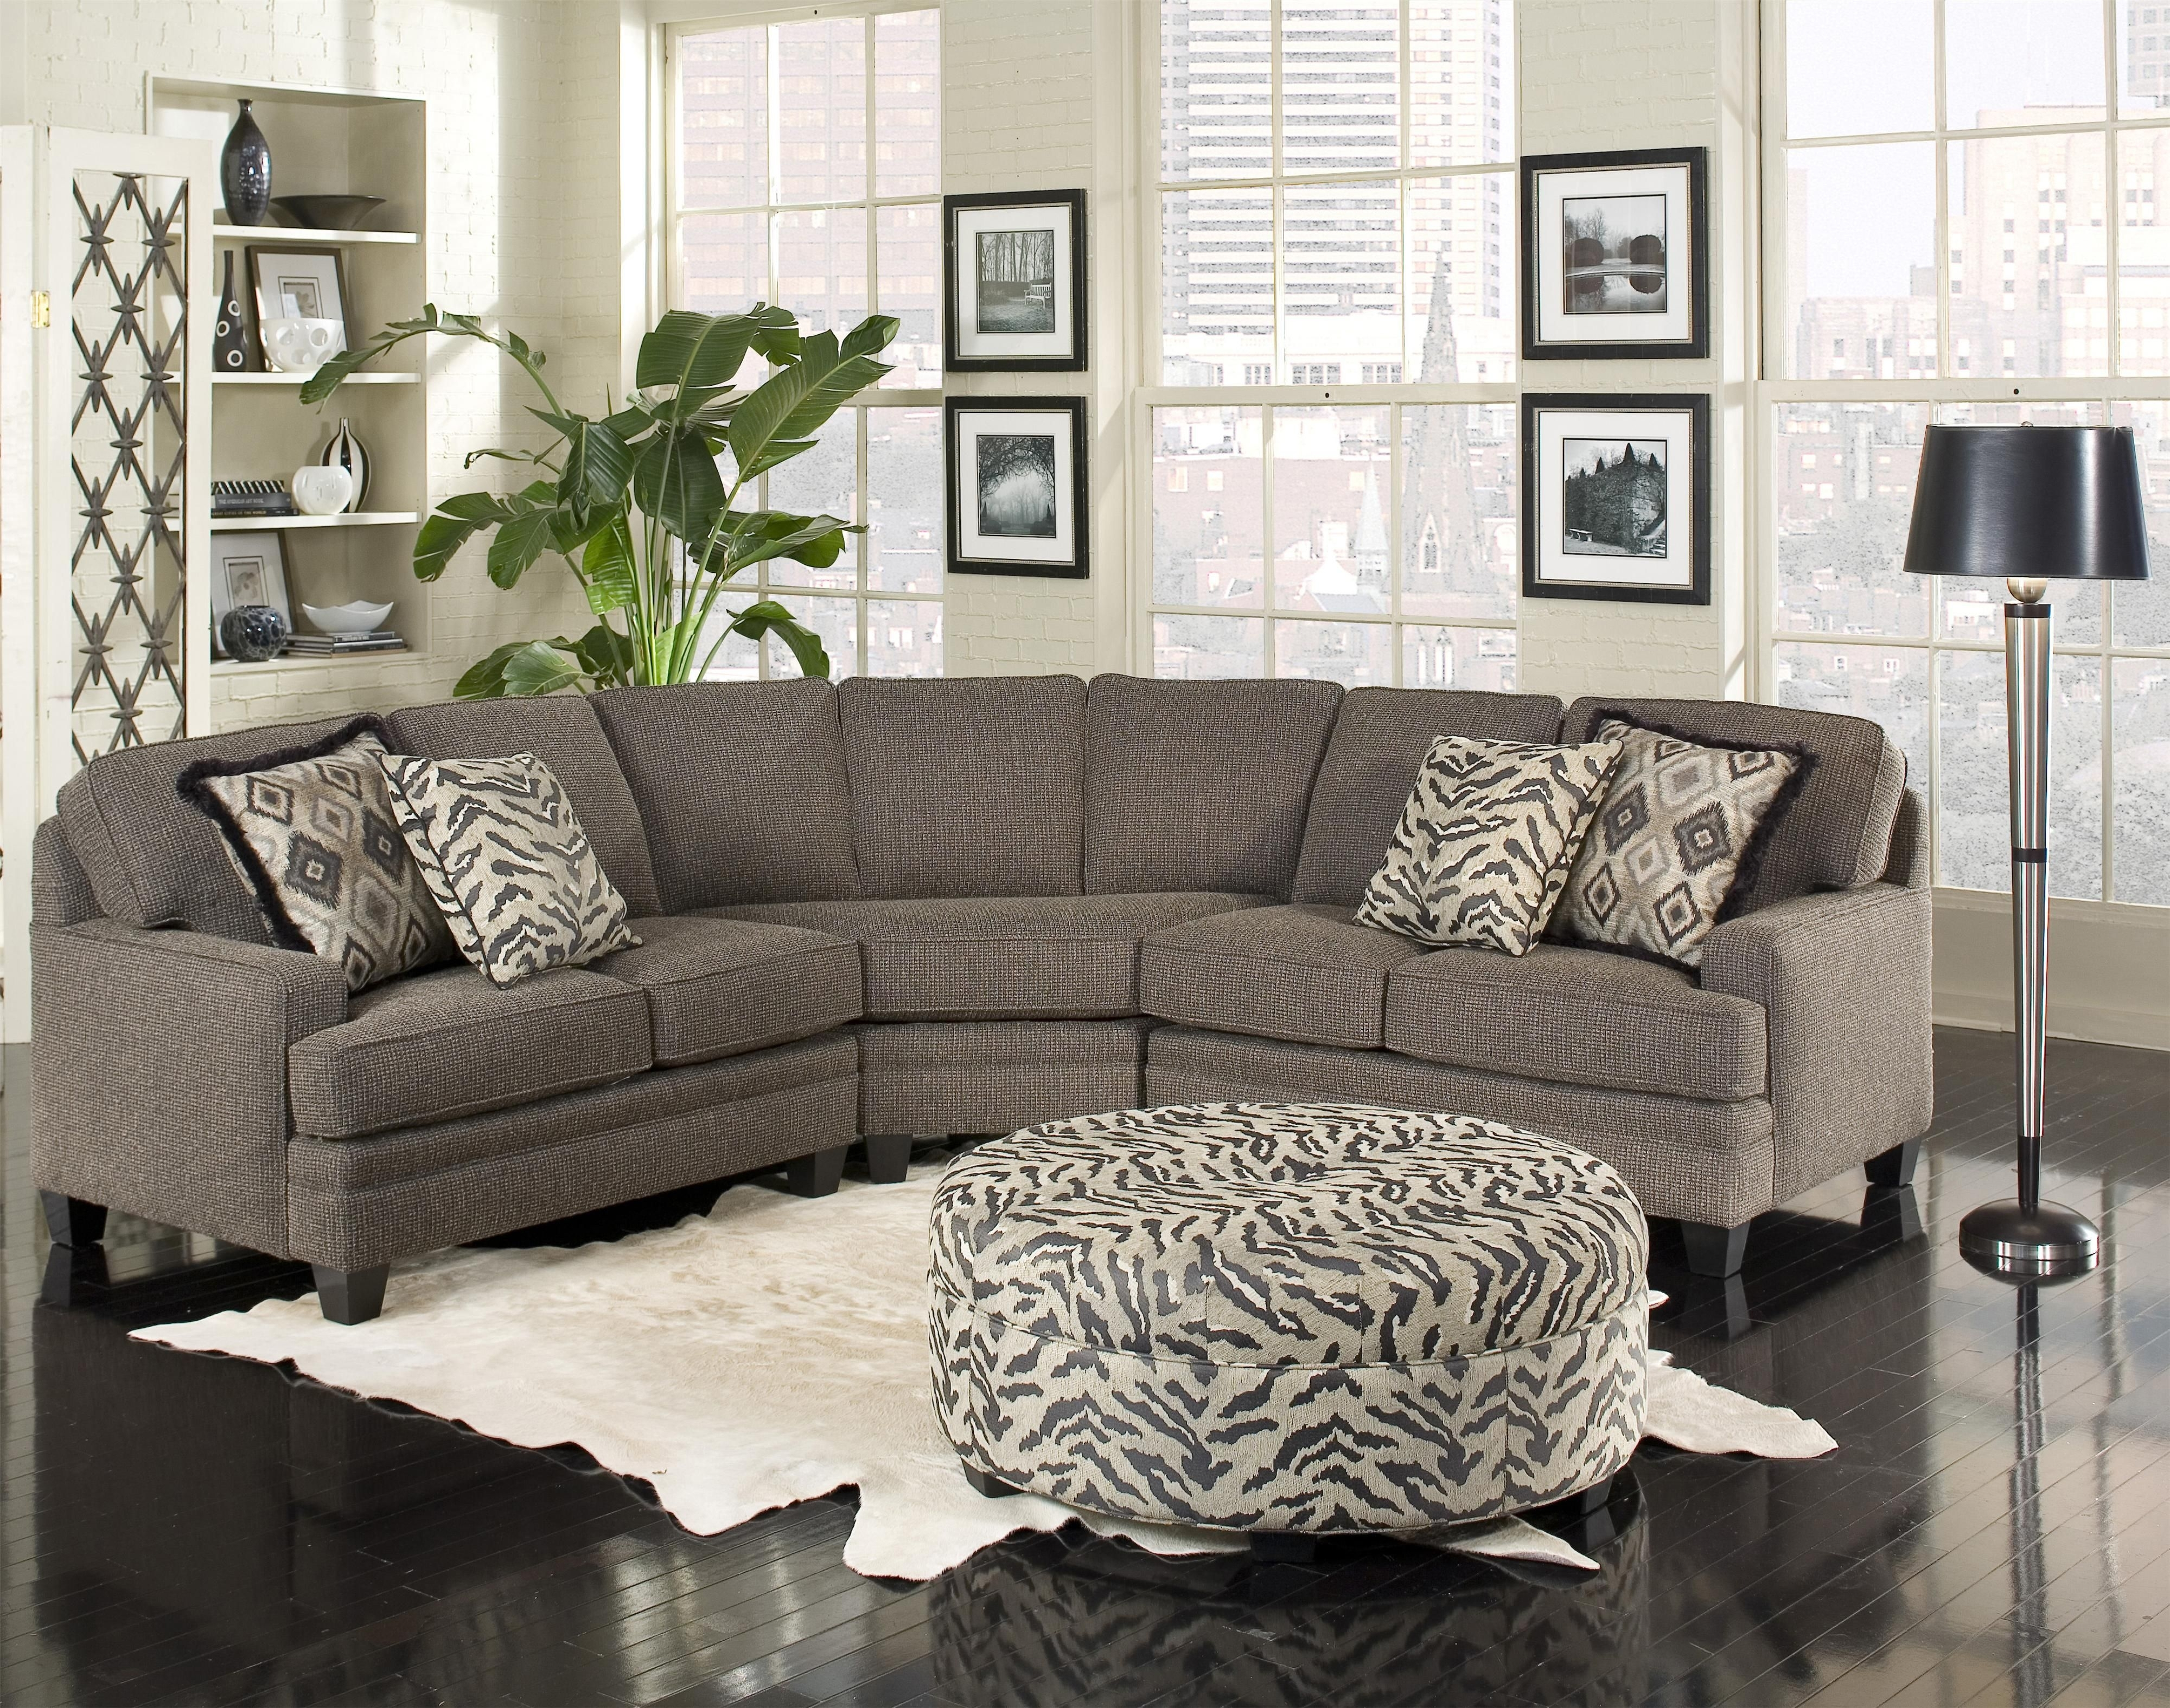 Build Your Own (5000 Series) Five Person Sectional Sofa With Throughout Harrisburg Pa Sectional Sofas (View 2 of 10)